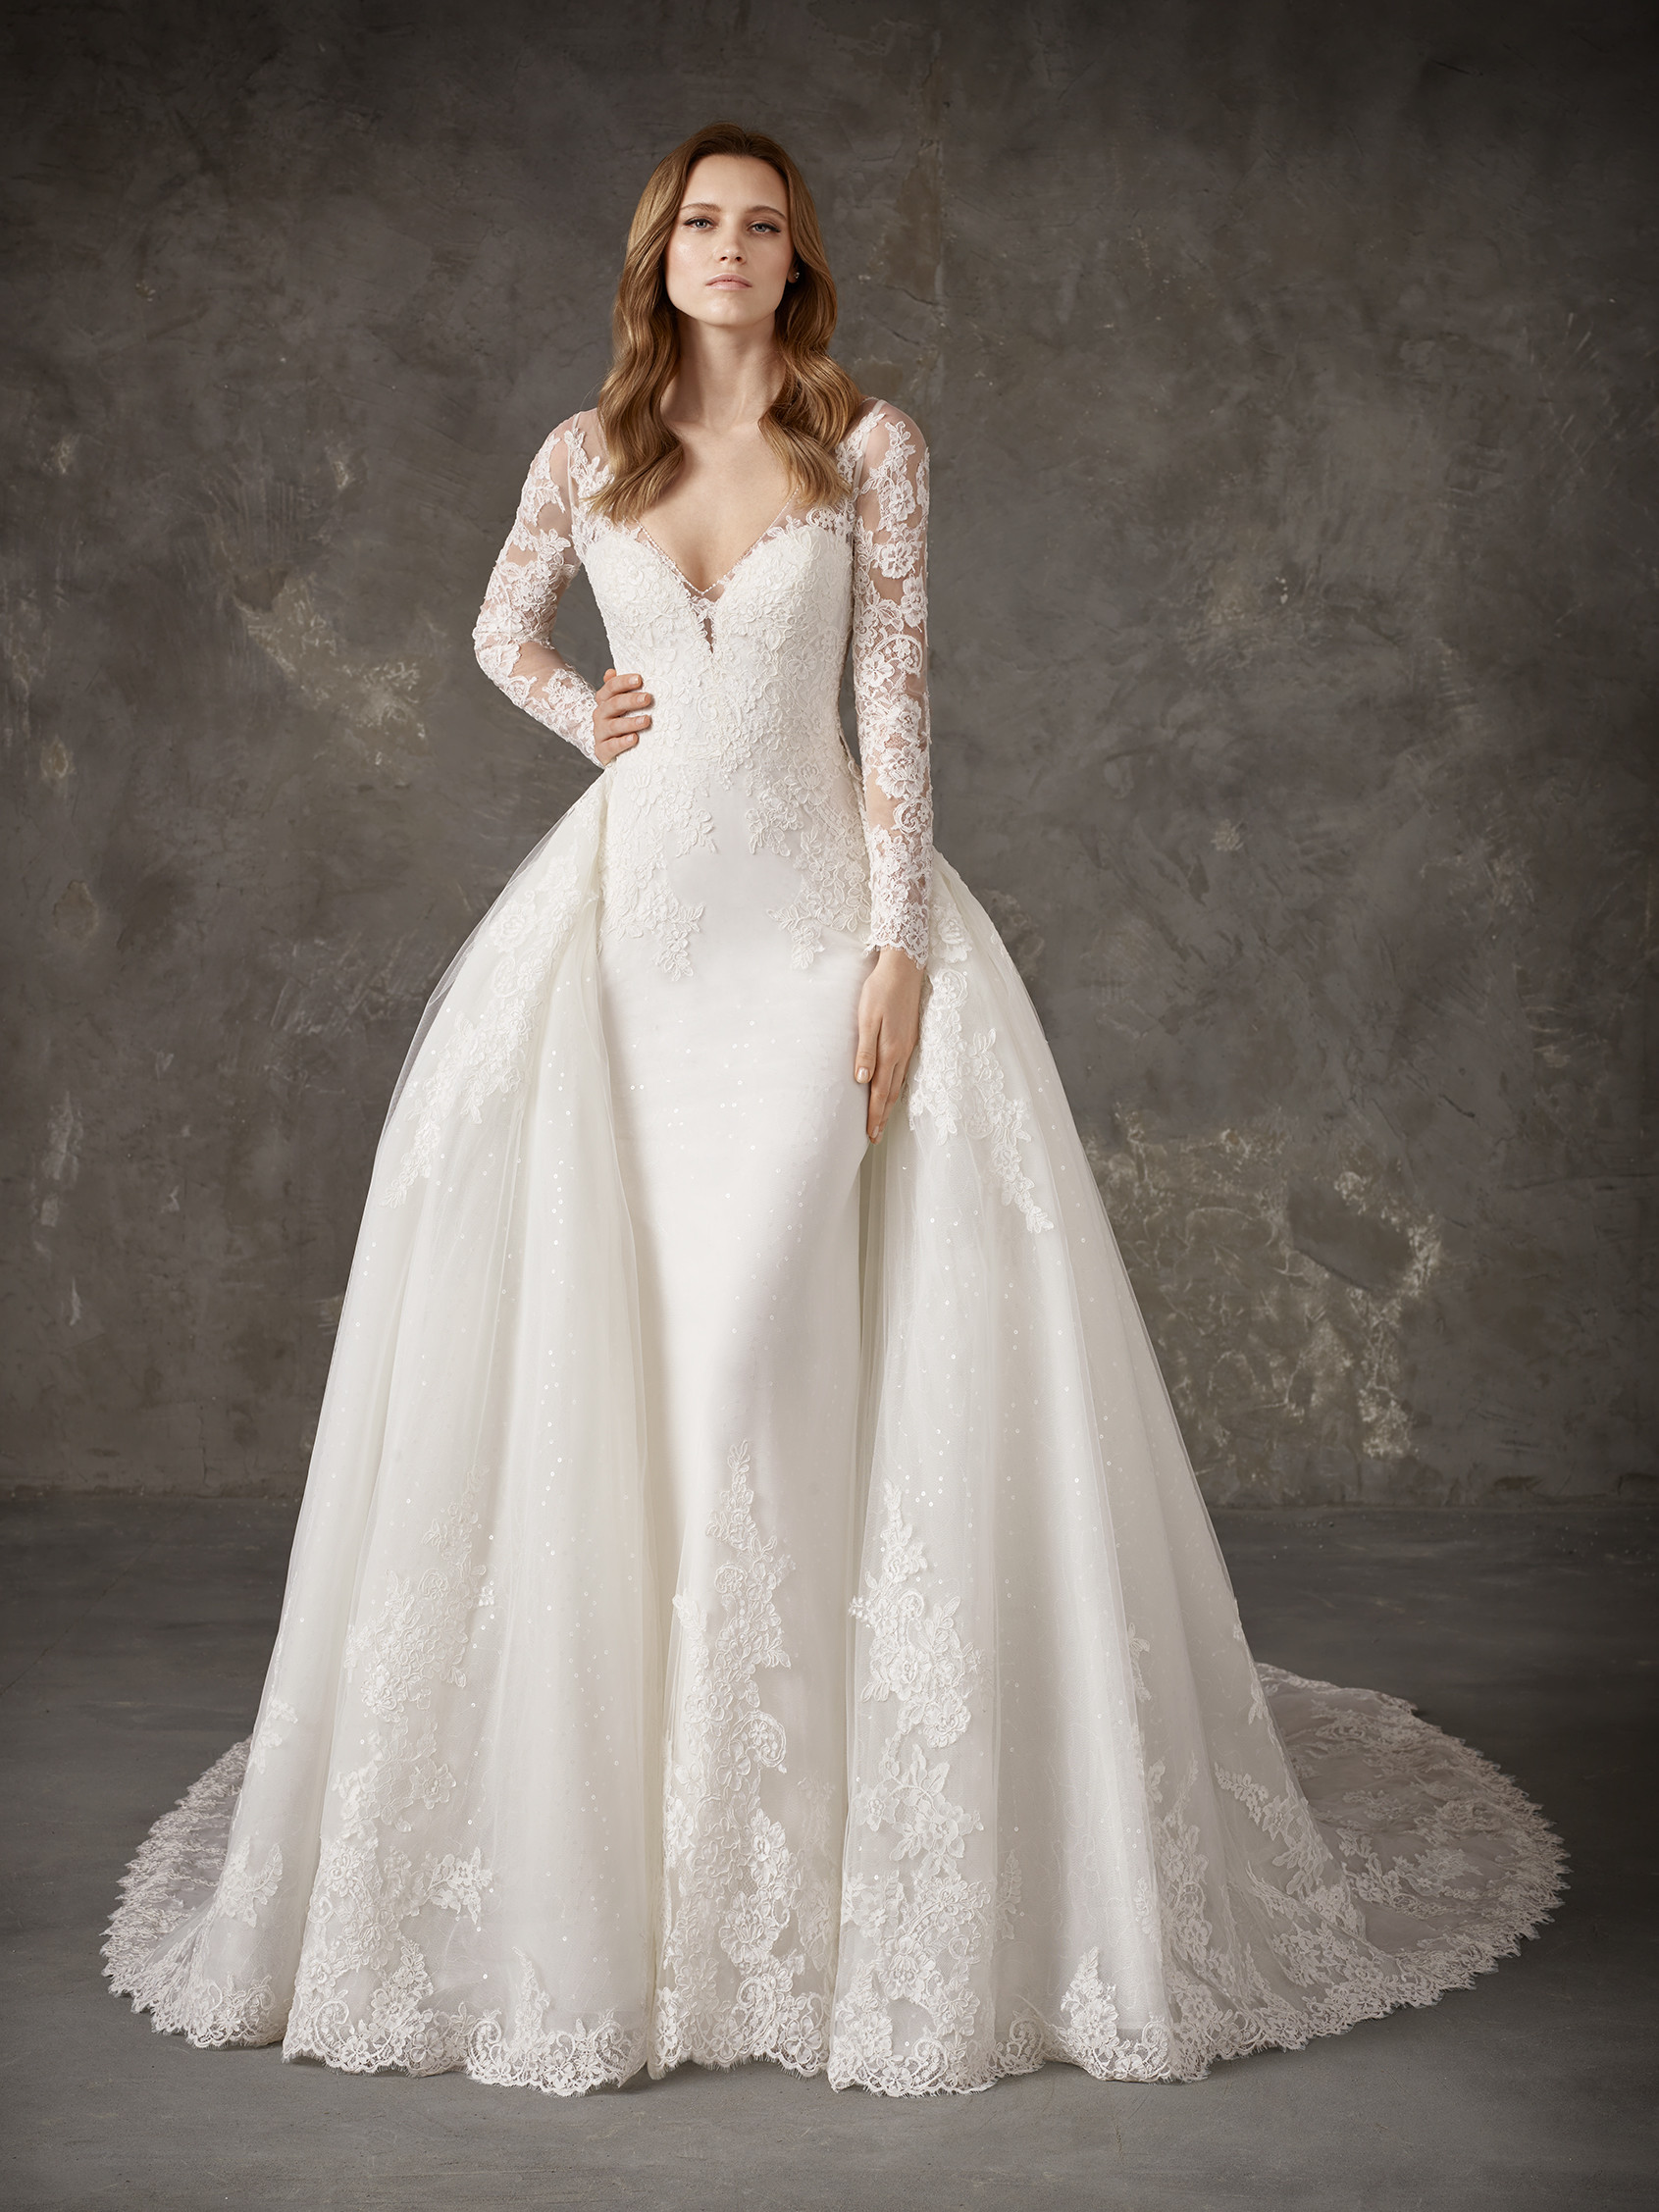 Elegant Wedding Dress With Detachable Overskirt Ovias